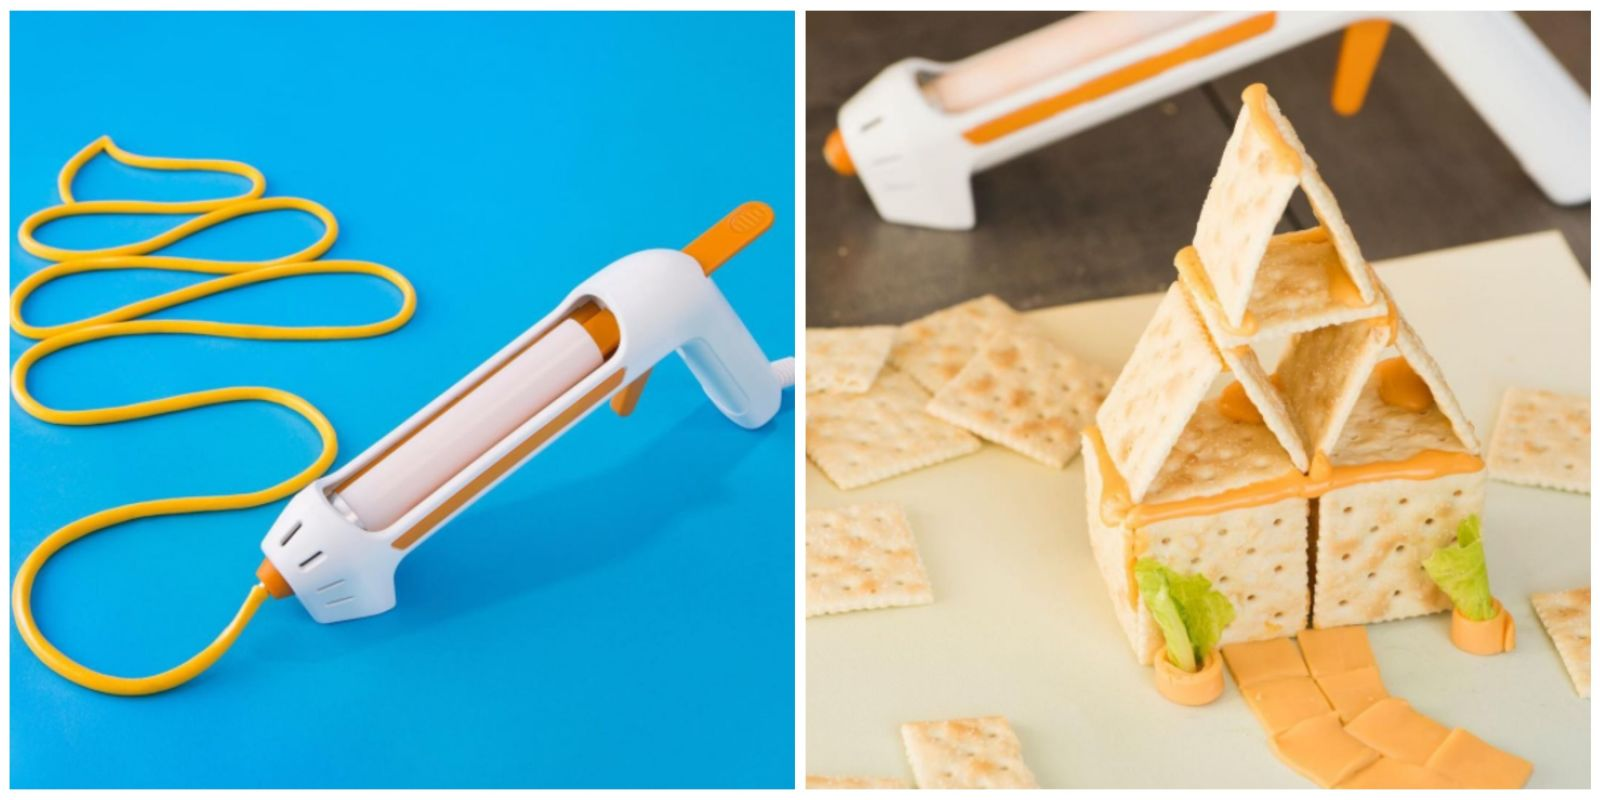 There Is Now a Hot Glue Gun for Cheese and We All Need It